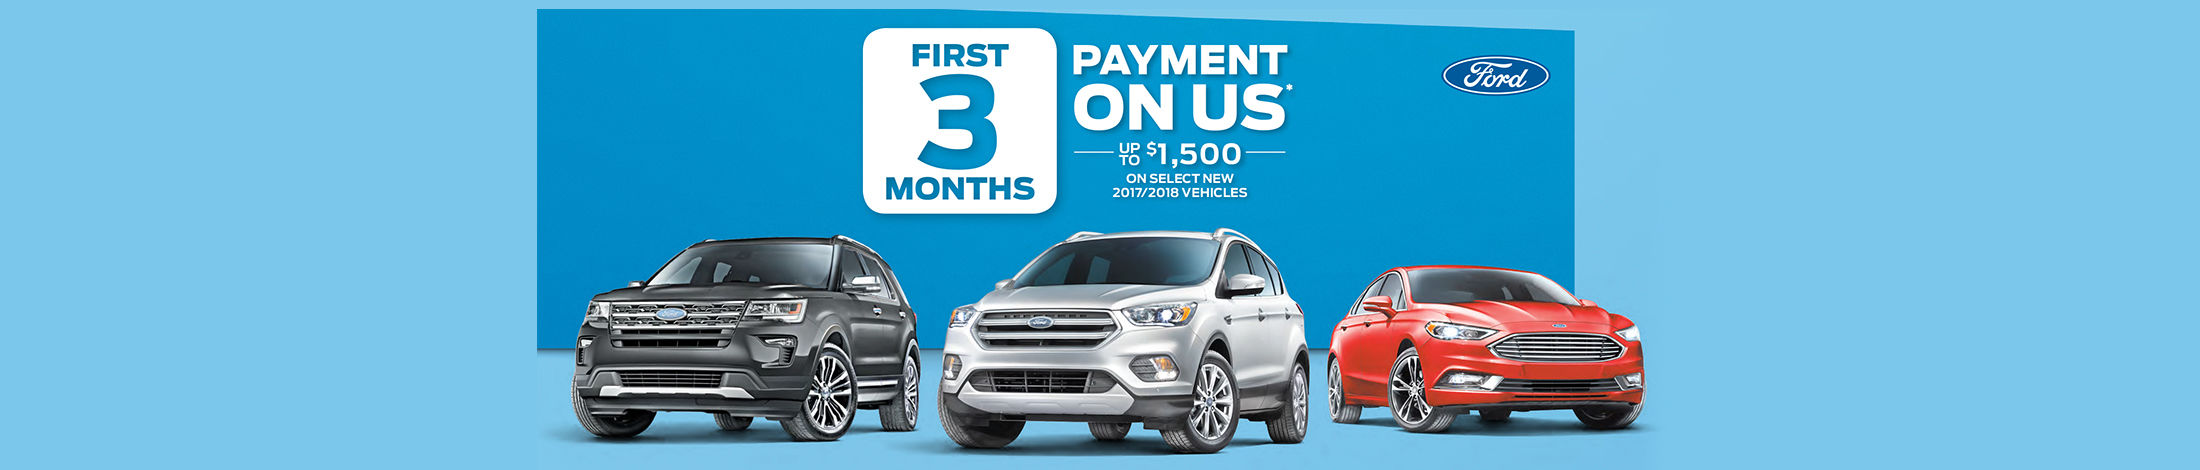 Payment on us 3 first months